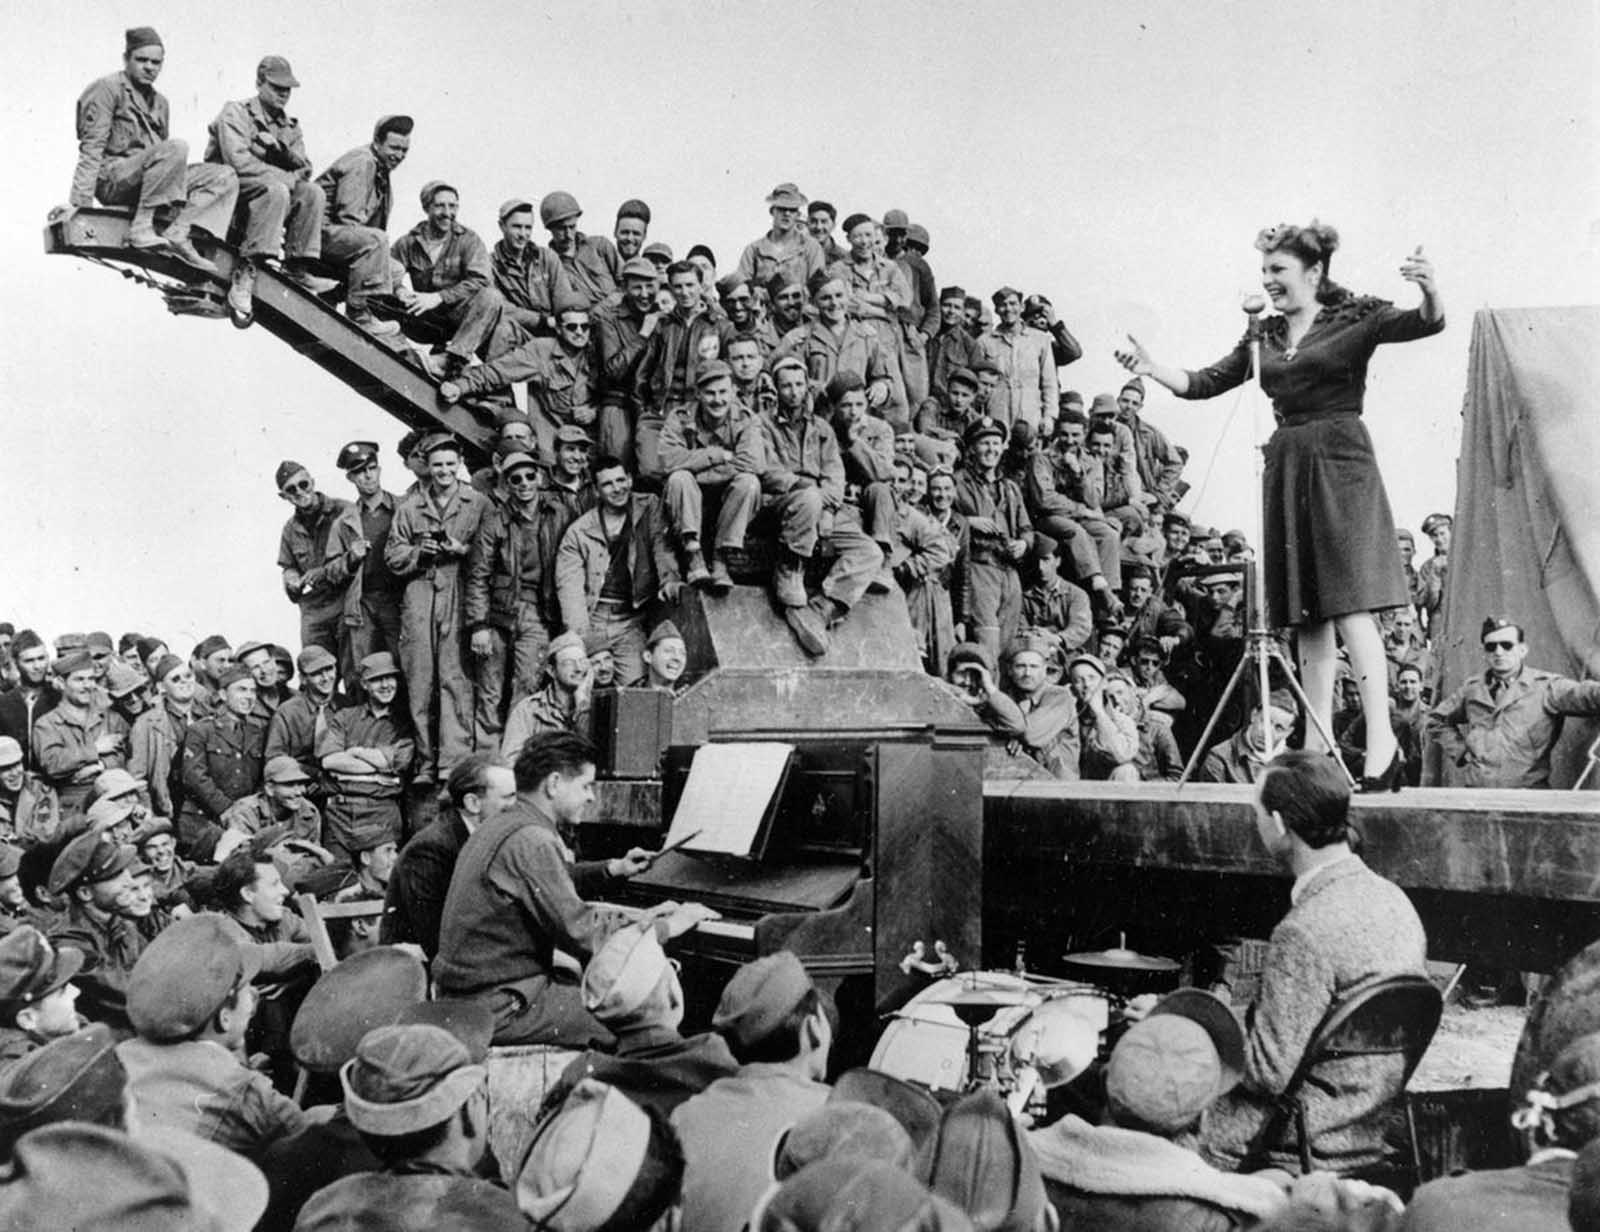 Actress-comedian Martha Raye entertains servicemen of the U.S. Army 12th Air Force on a makeshift stage on the edge of the Sahara Desert in North Africa in 1943.